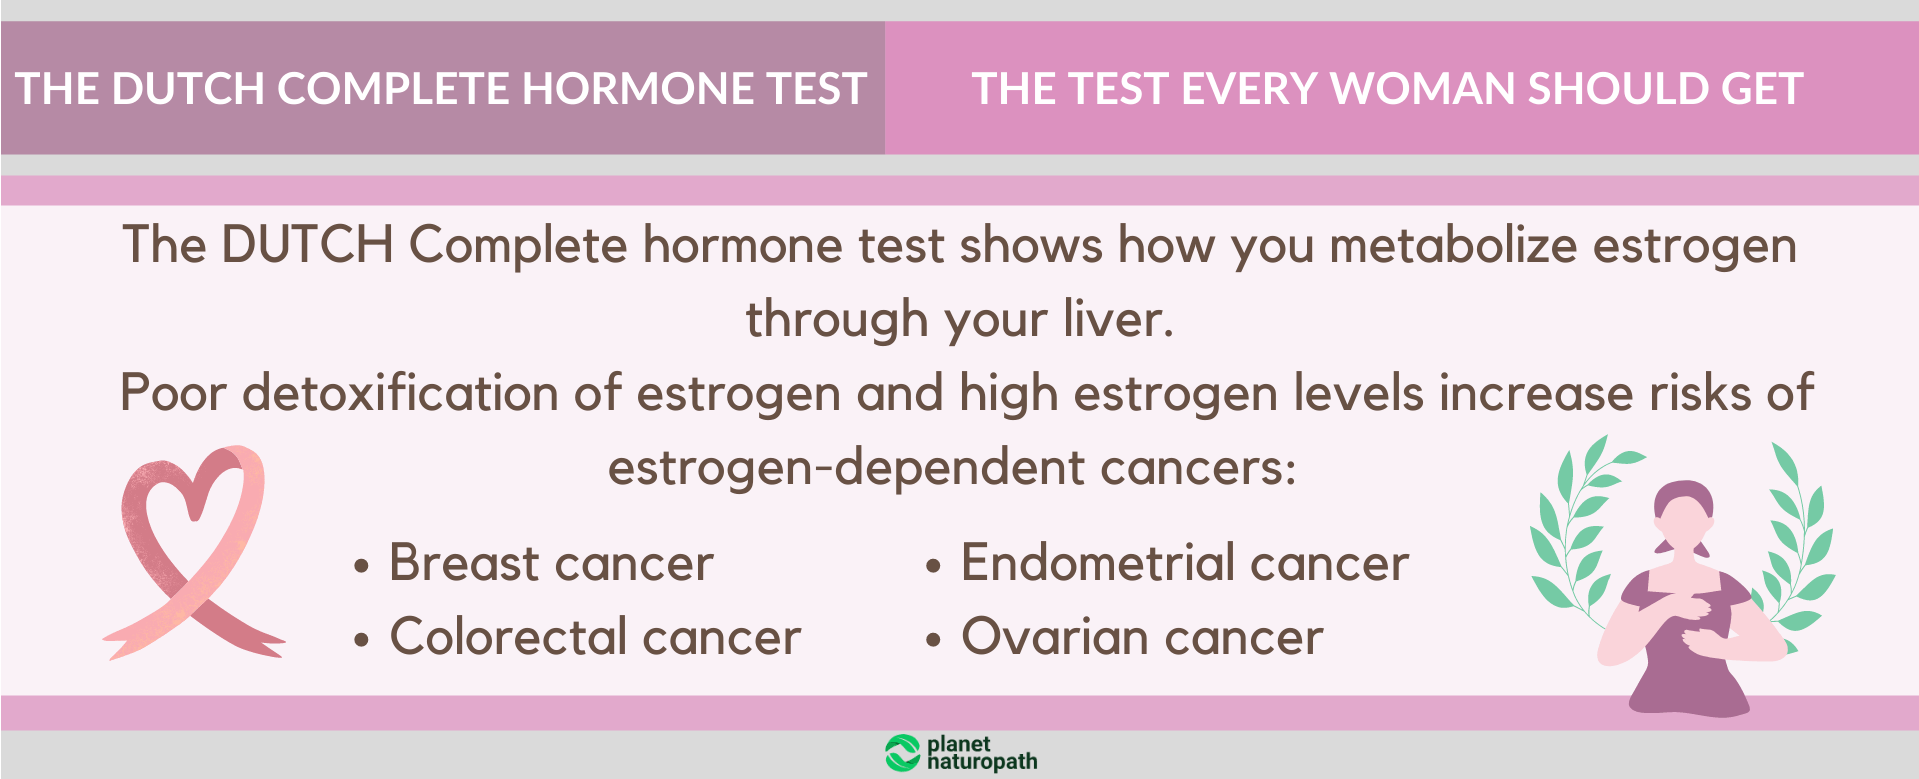 The-DUTCH-Complete-hormone-test-is-test-every-woman-should-get-